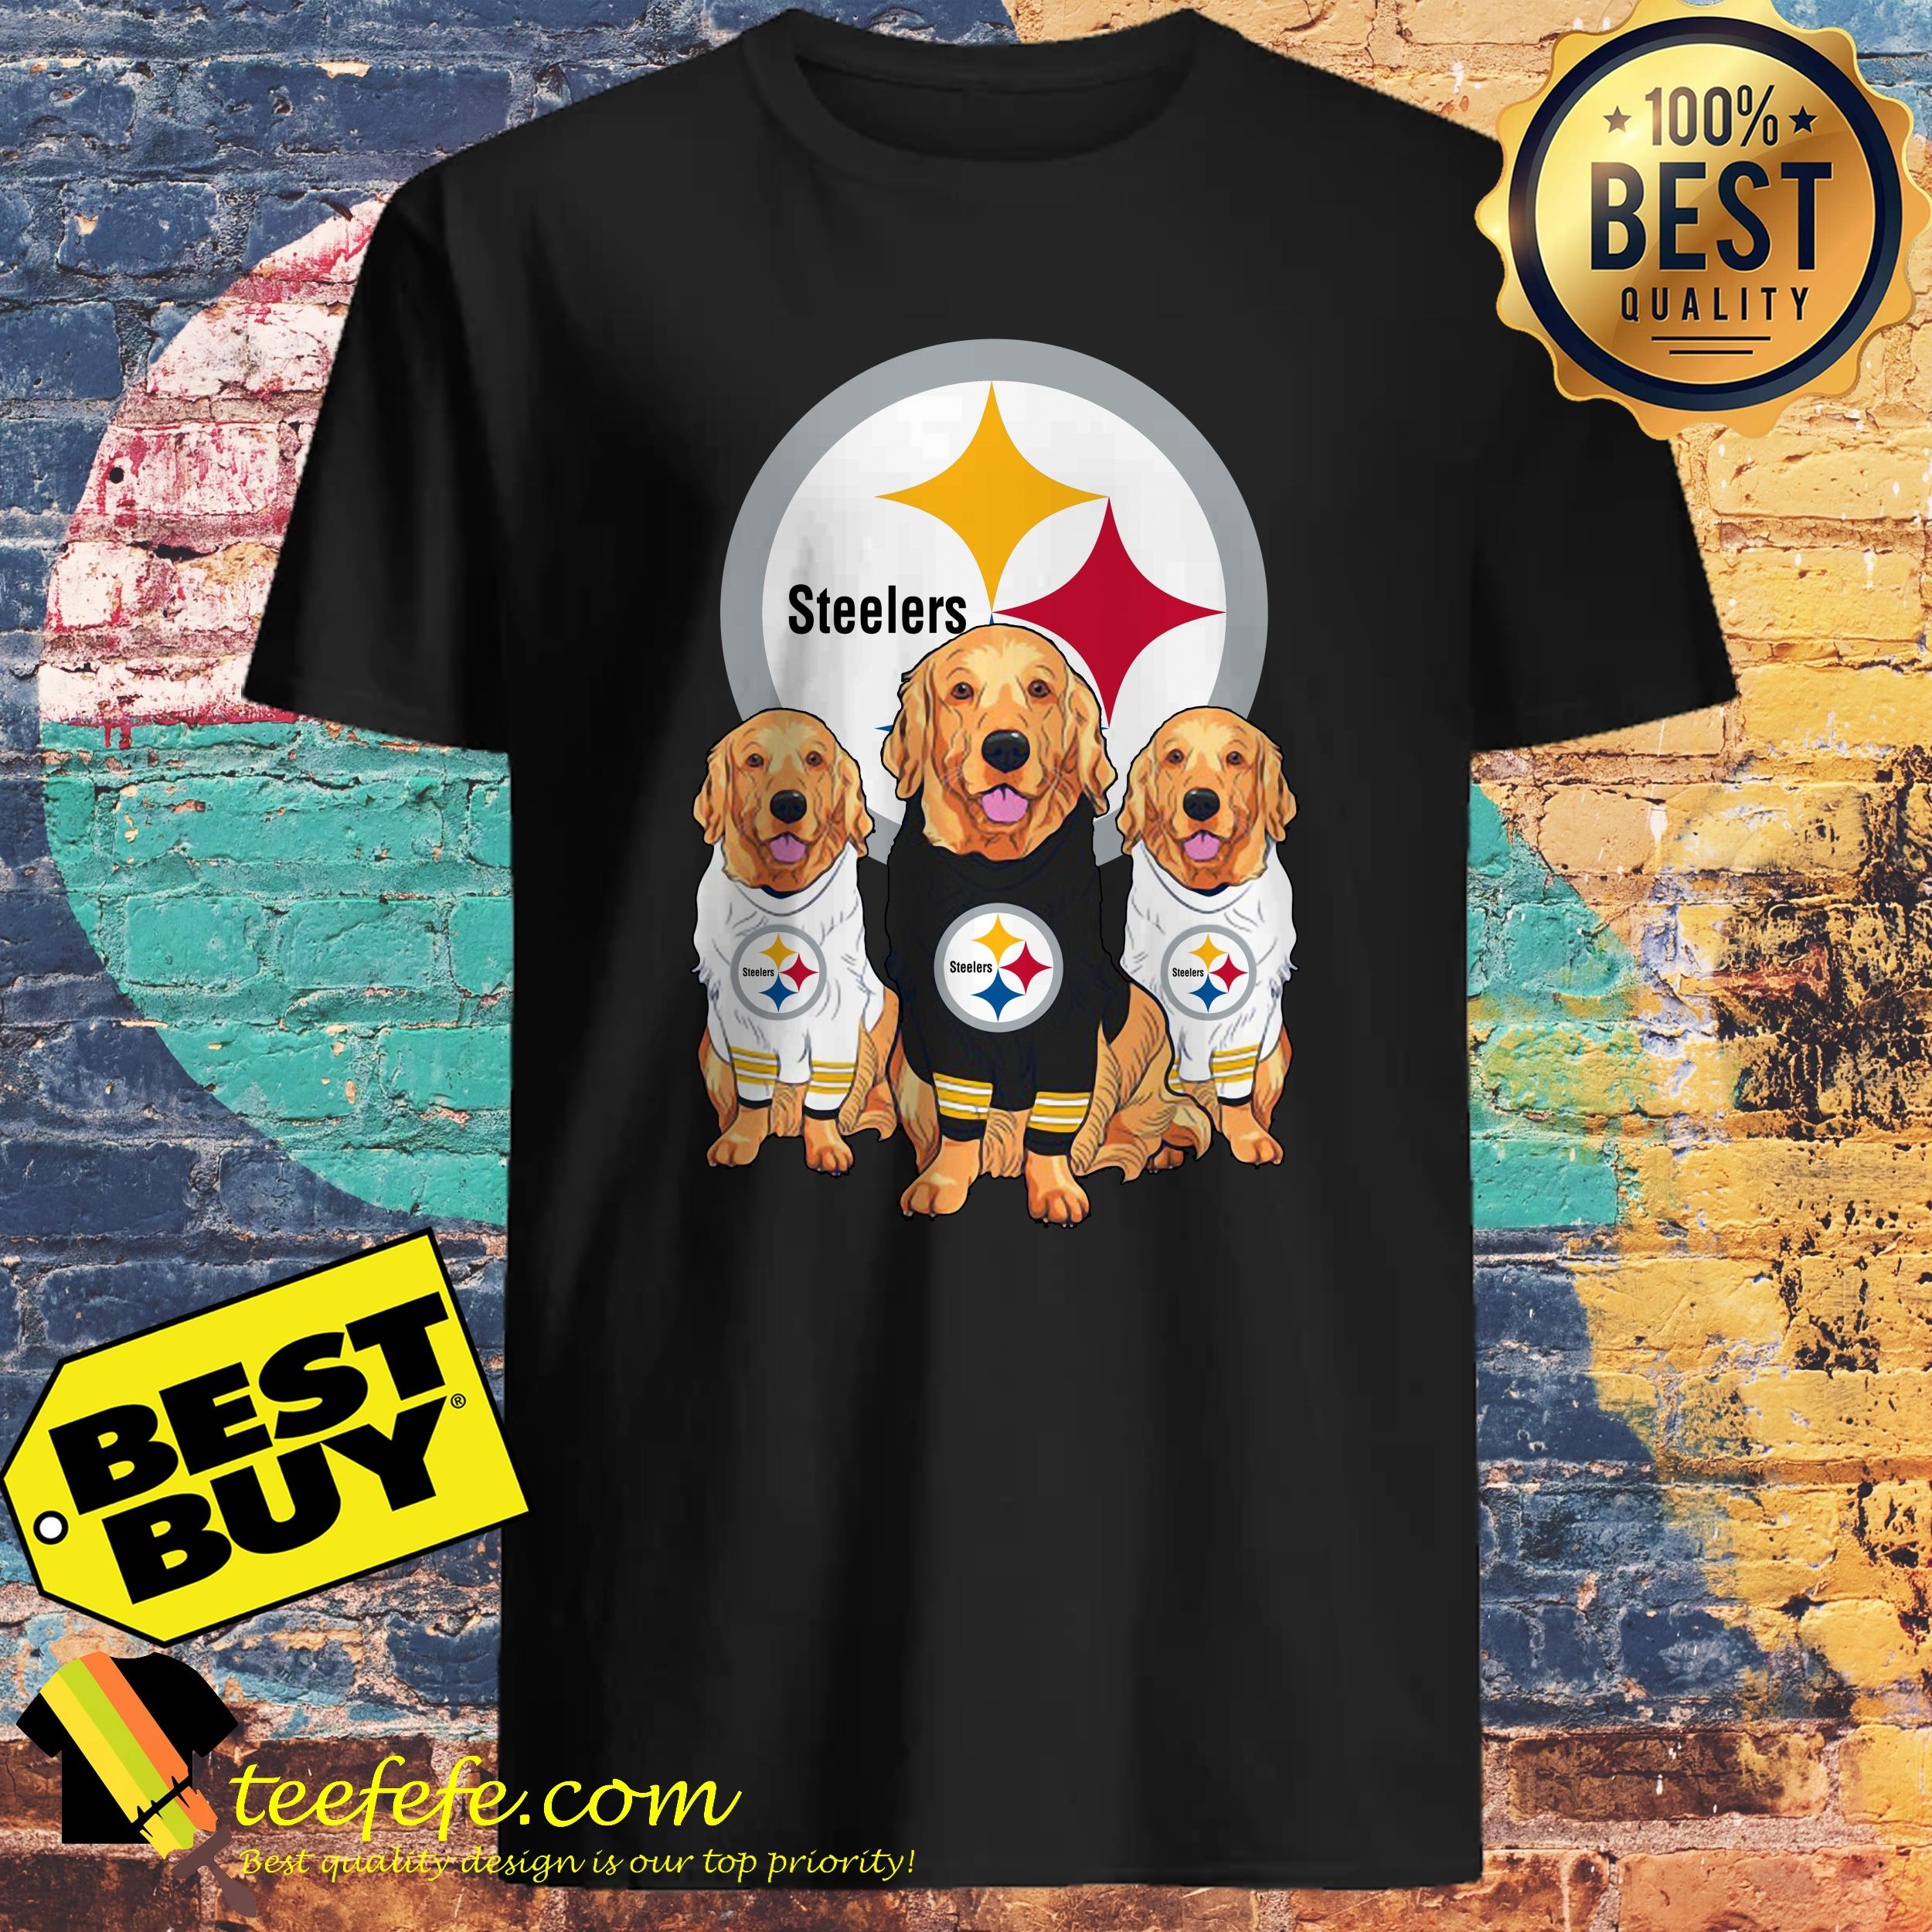 separation shoes 953c5 efe1a Pittsburgh Steelers Dog Golden Retriever shirt